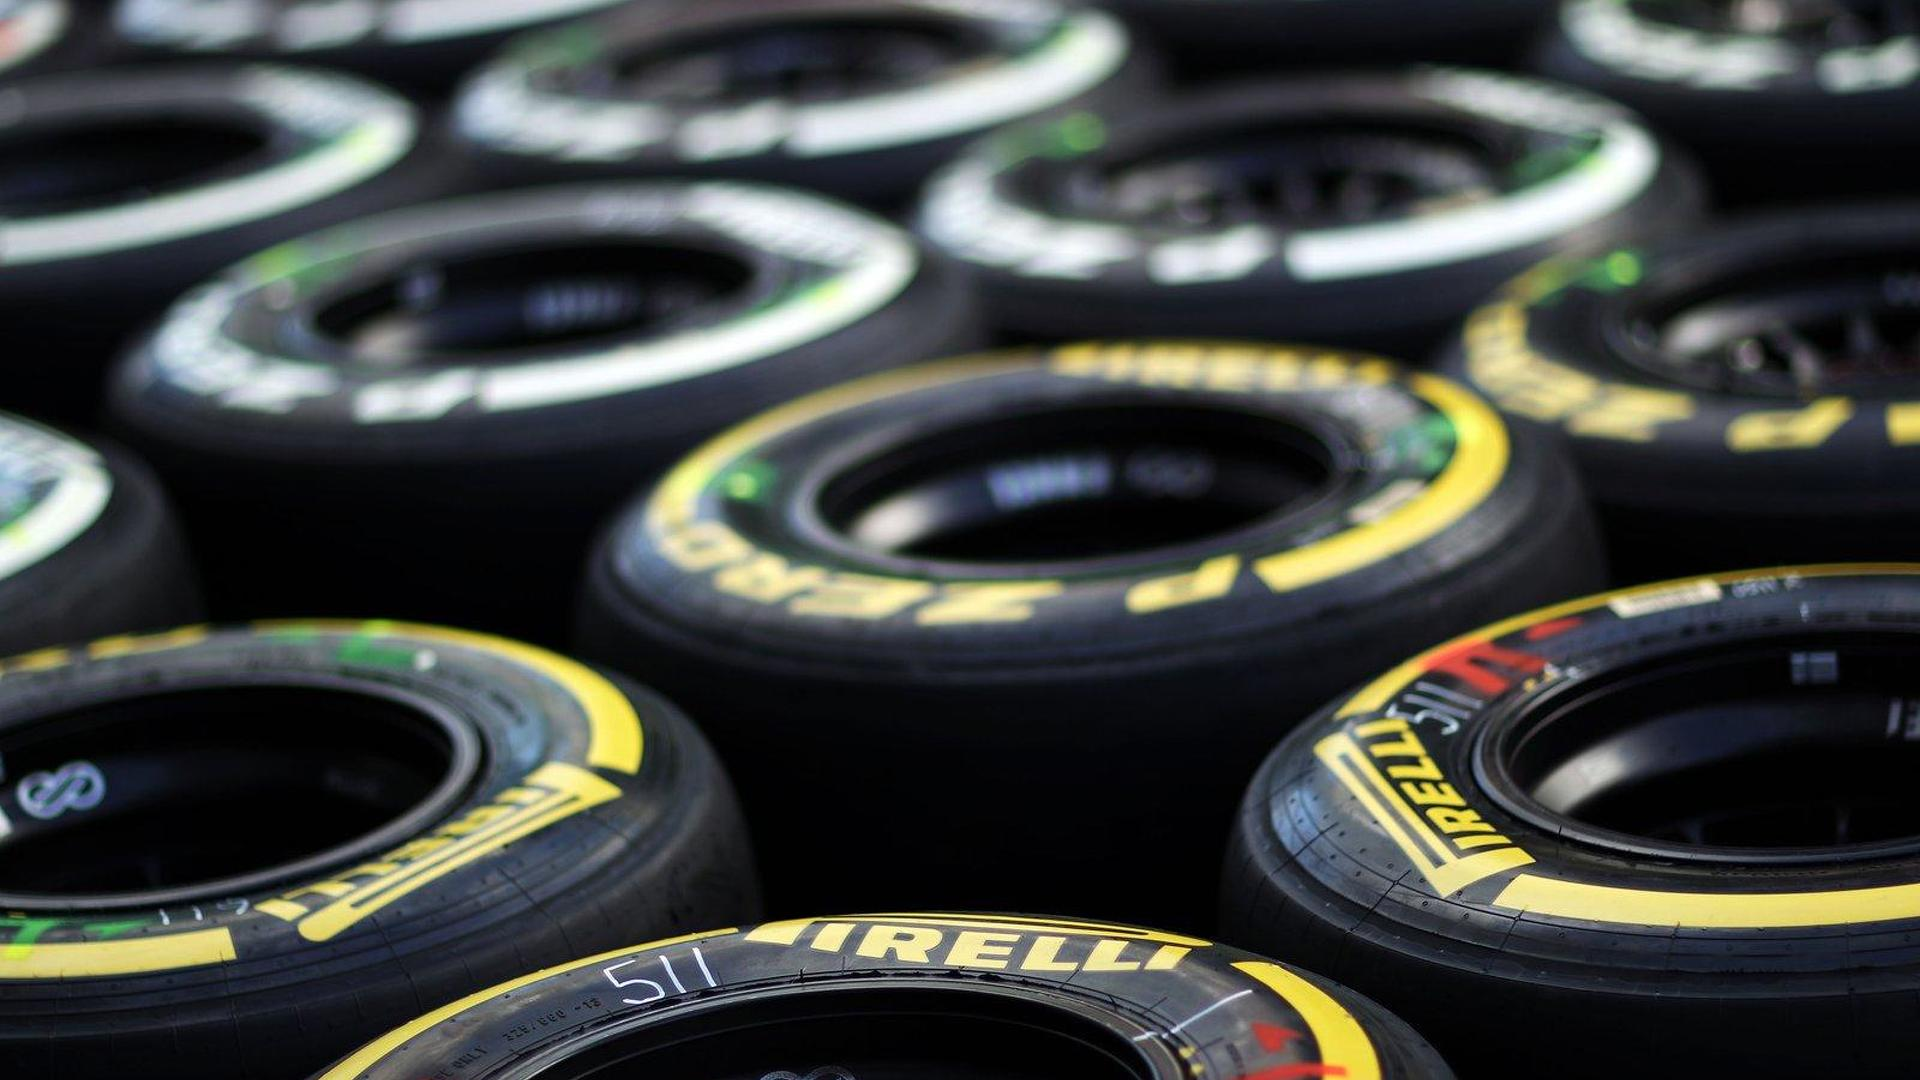 Teams braced for tyre supplier switch 'curveball'